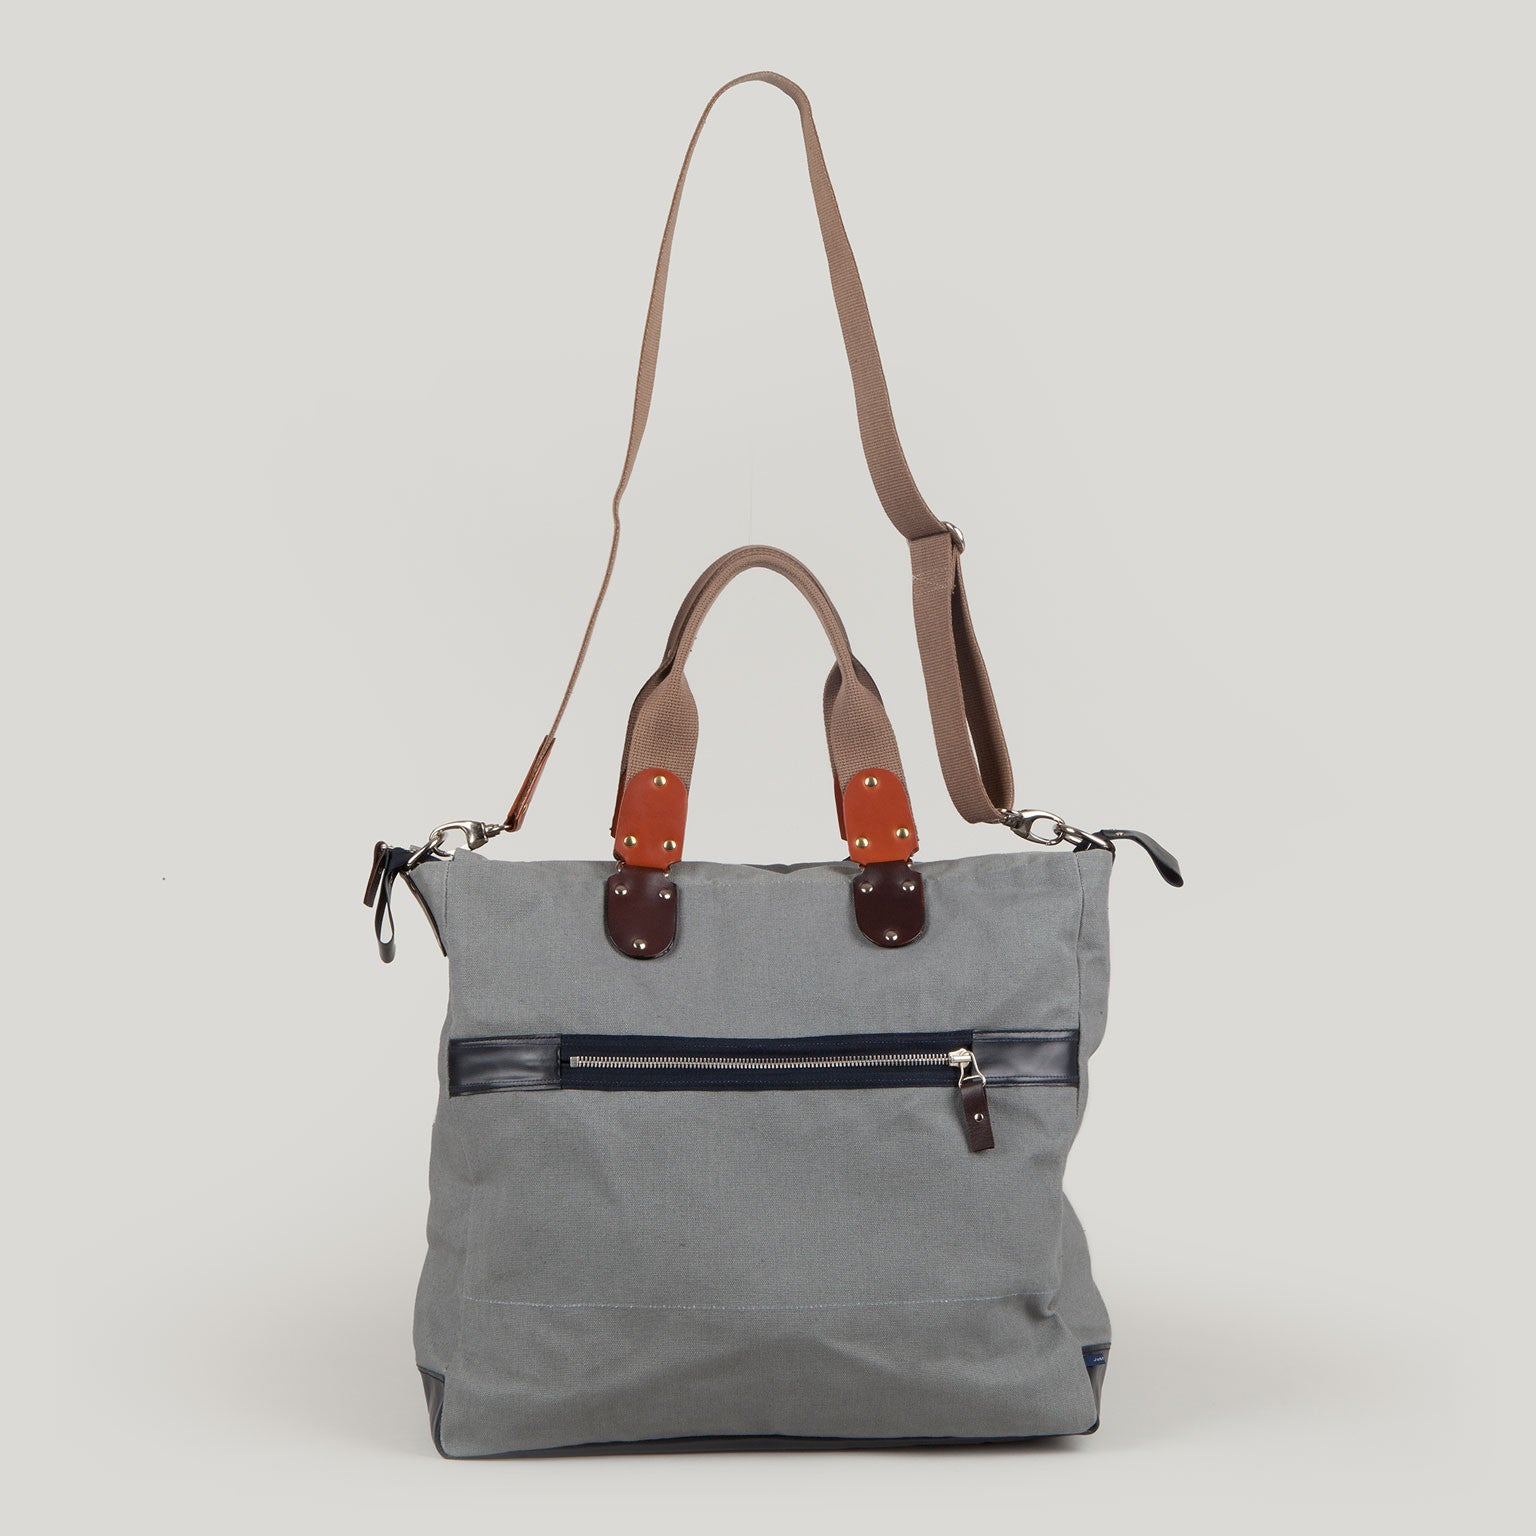 FRANCIS Shoulder Bag - grey